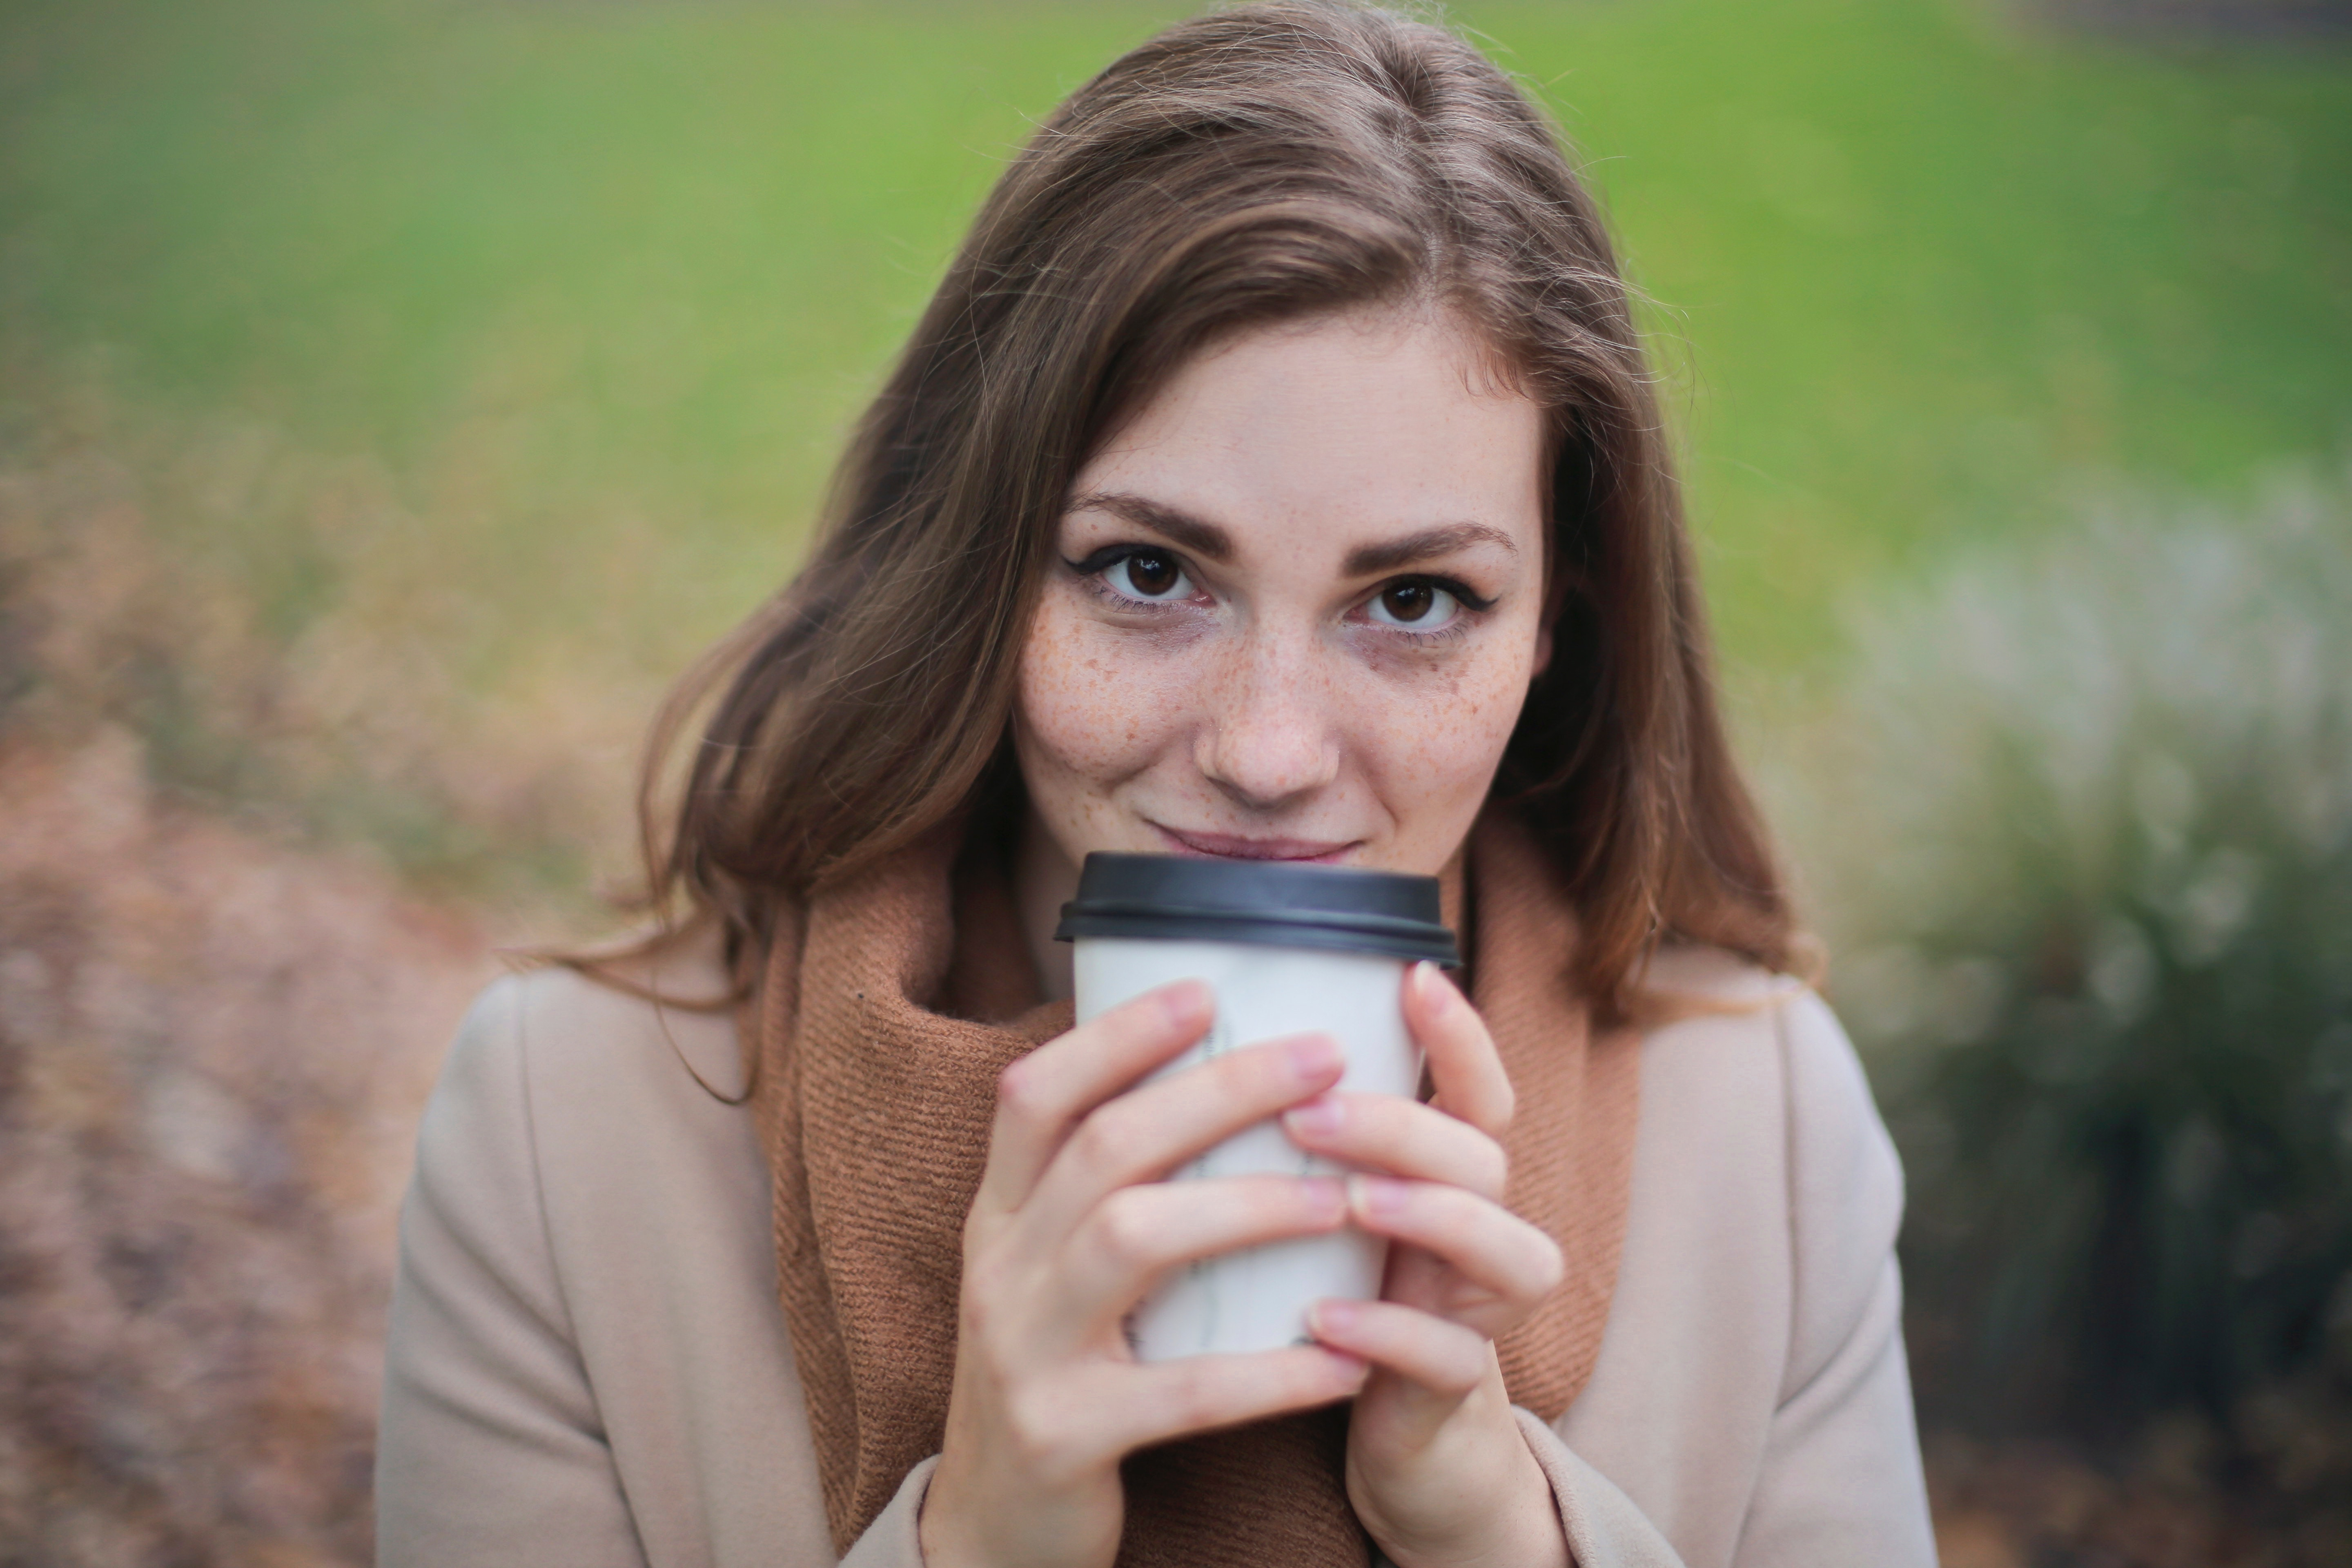 Woman in Brown Top and Scarf Holding a White and Black Travel Cup Outside, Person, Park, Outdoors, Pretty, HQ Photo